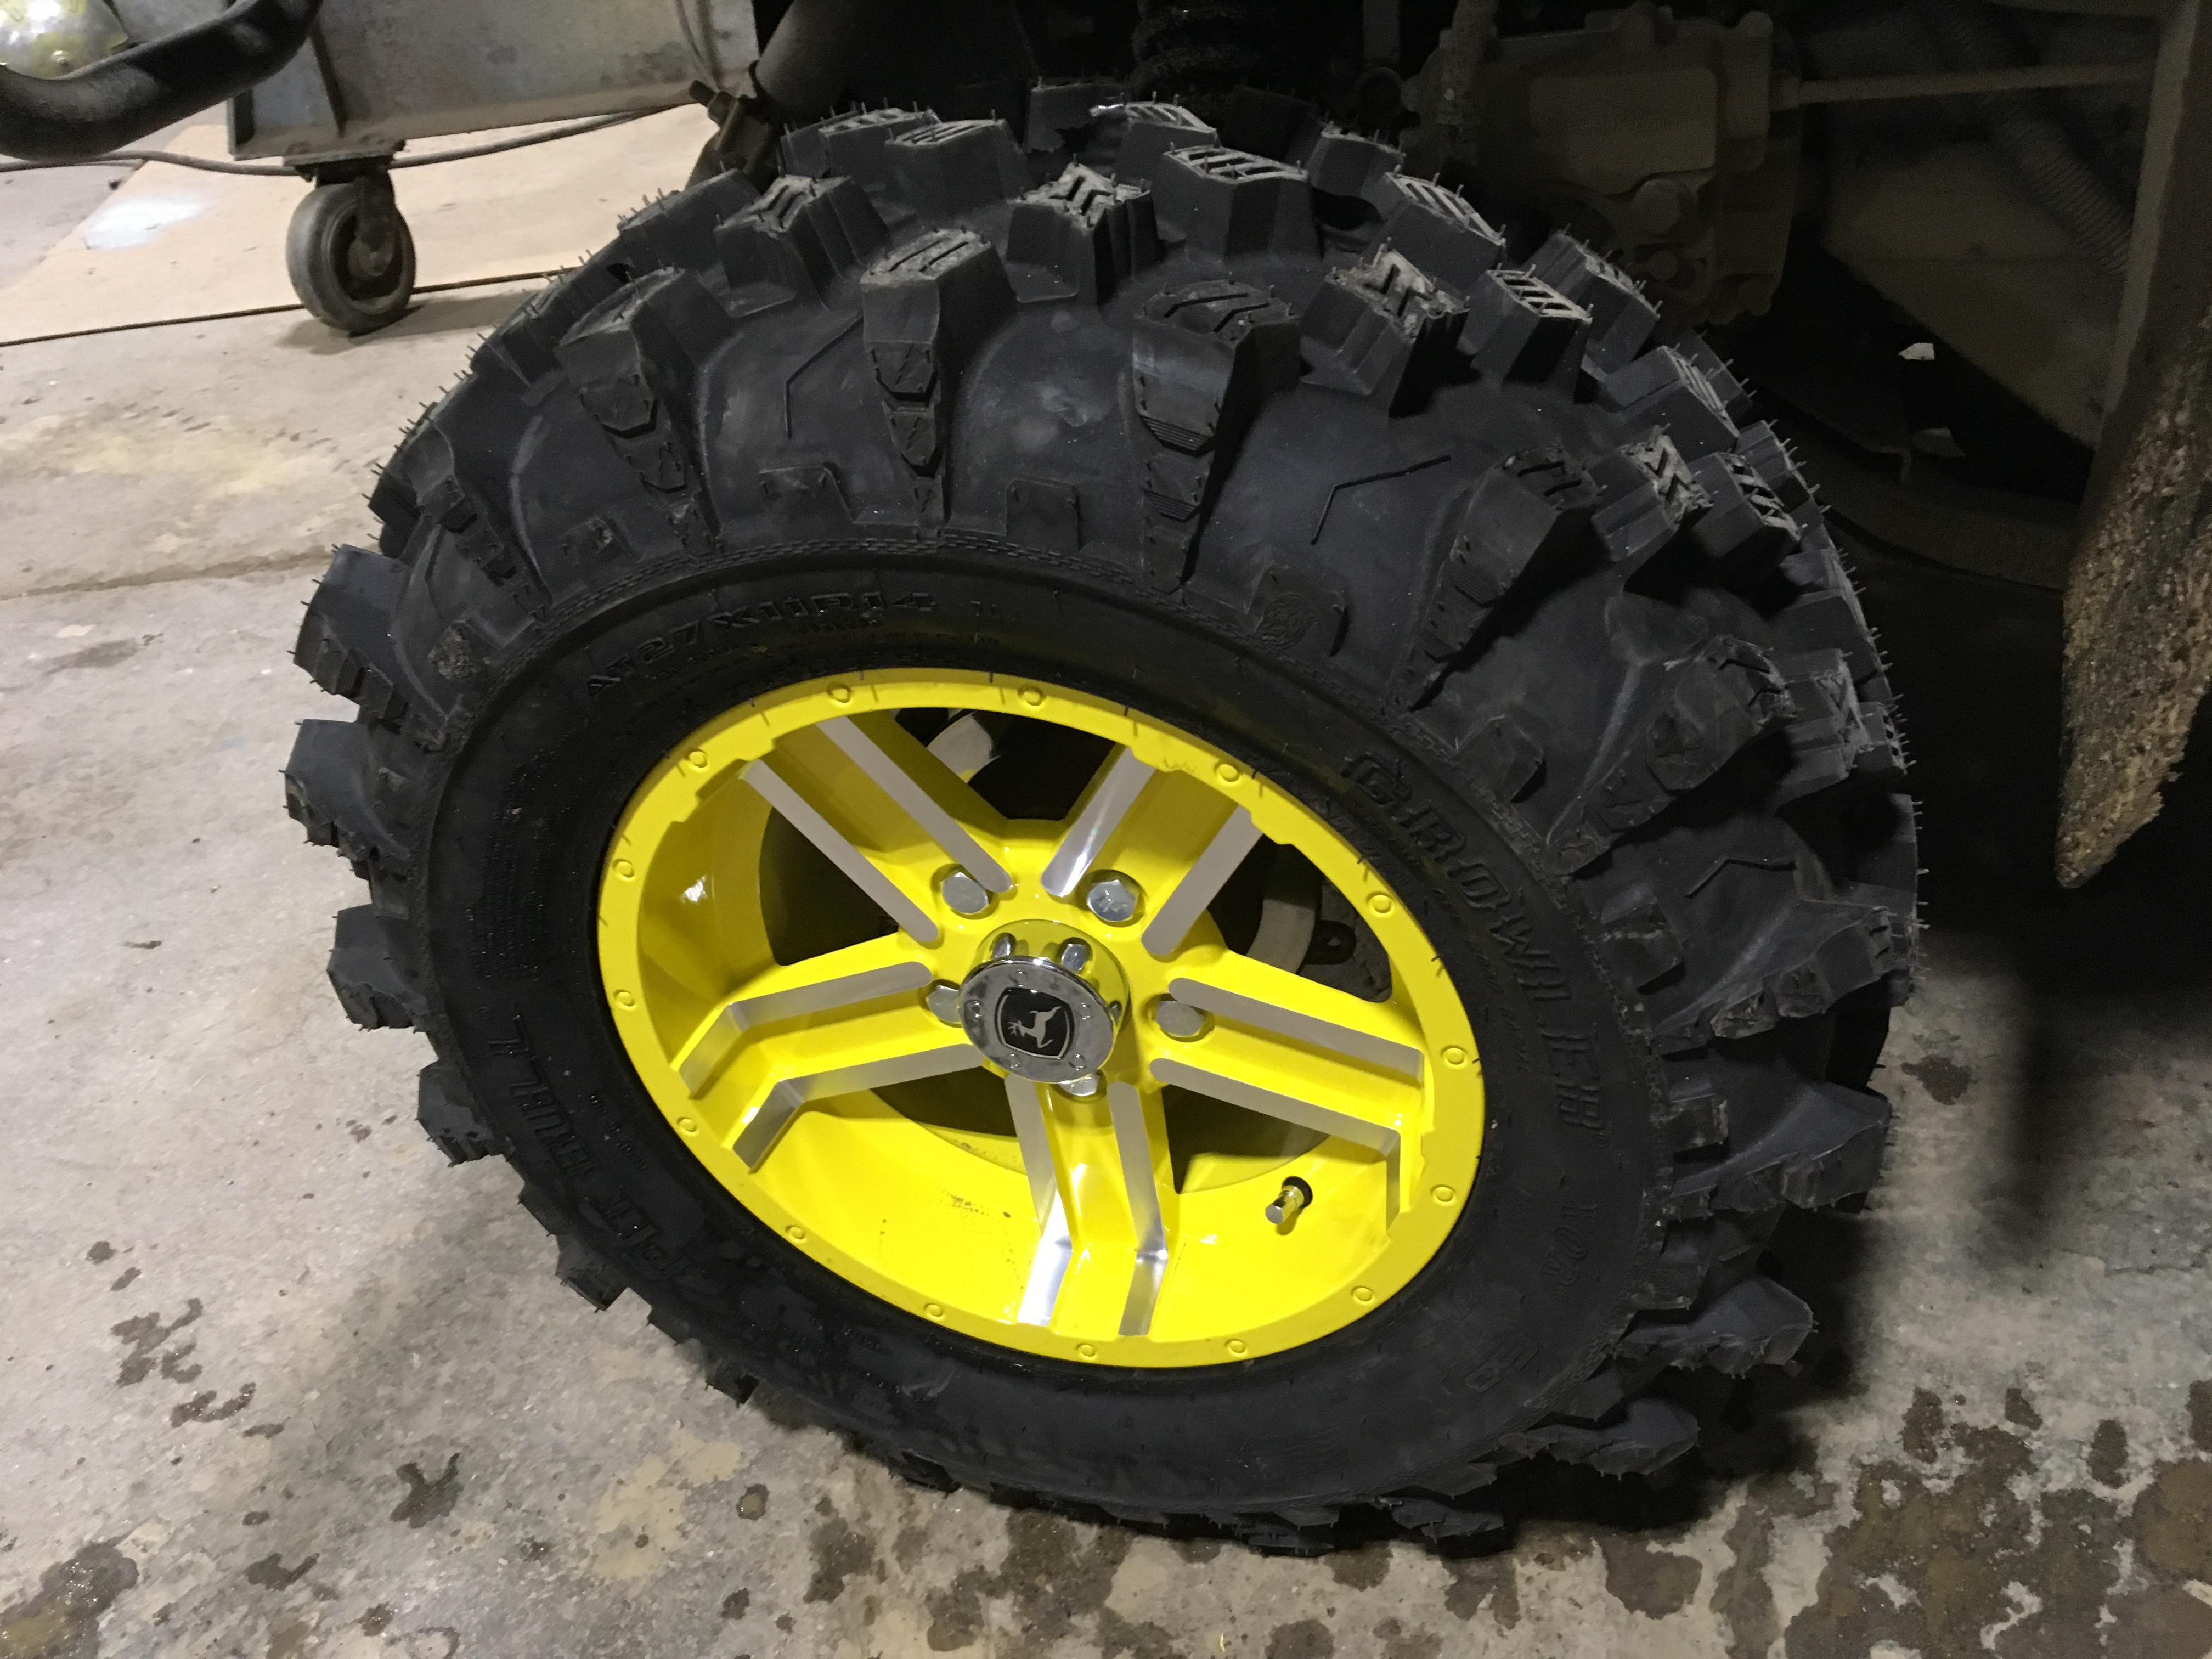 John Deere Gator >> New wheels and tires! - John Deere Gator Forums